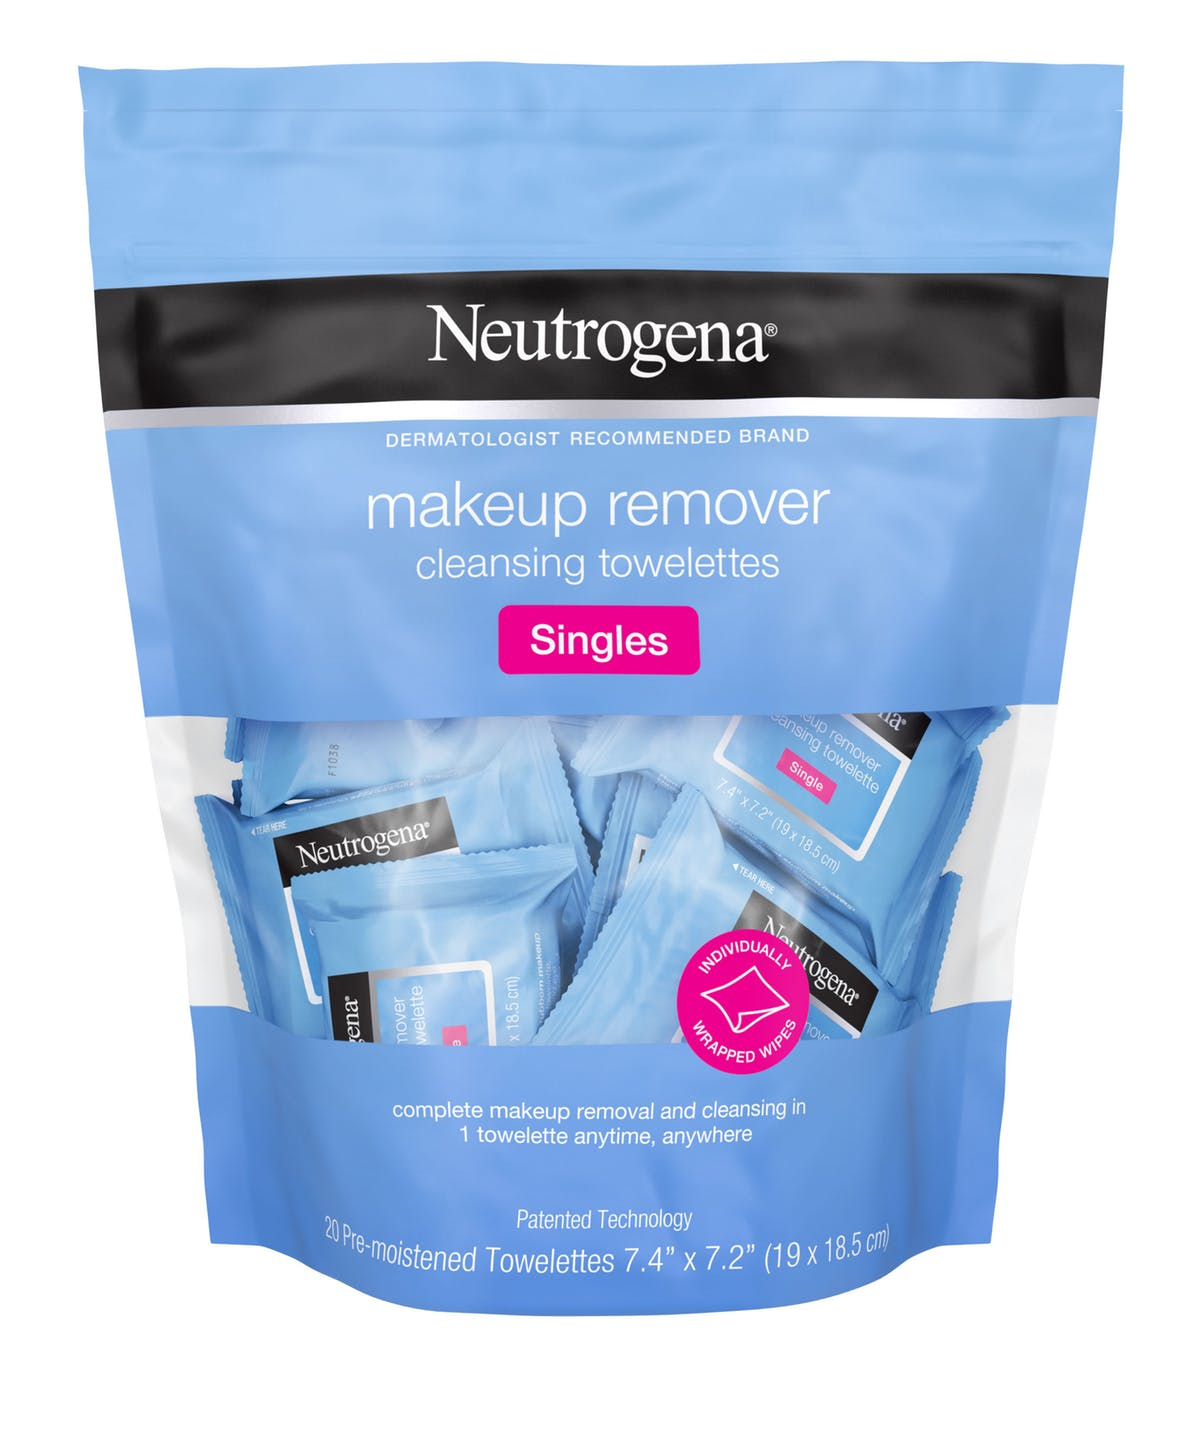 Neutrogena Face Towelettes - If you don't have time to take a shower after class, these are a great alternative to help clean your face from any sweat, which can cause breakouts. Neutrogena even sells towelette singles now that you can just toss in your gym bag instead of carrying around a giant package of wipes